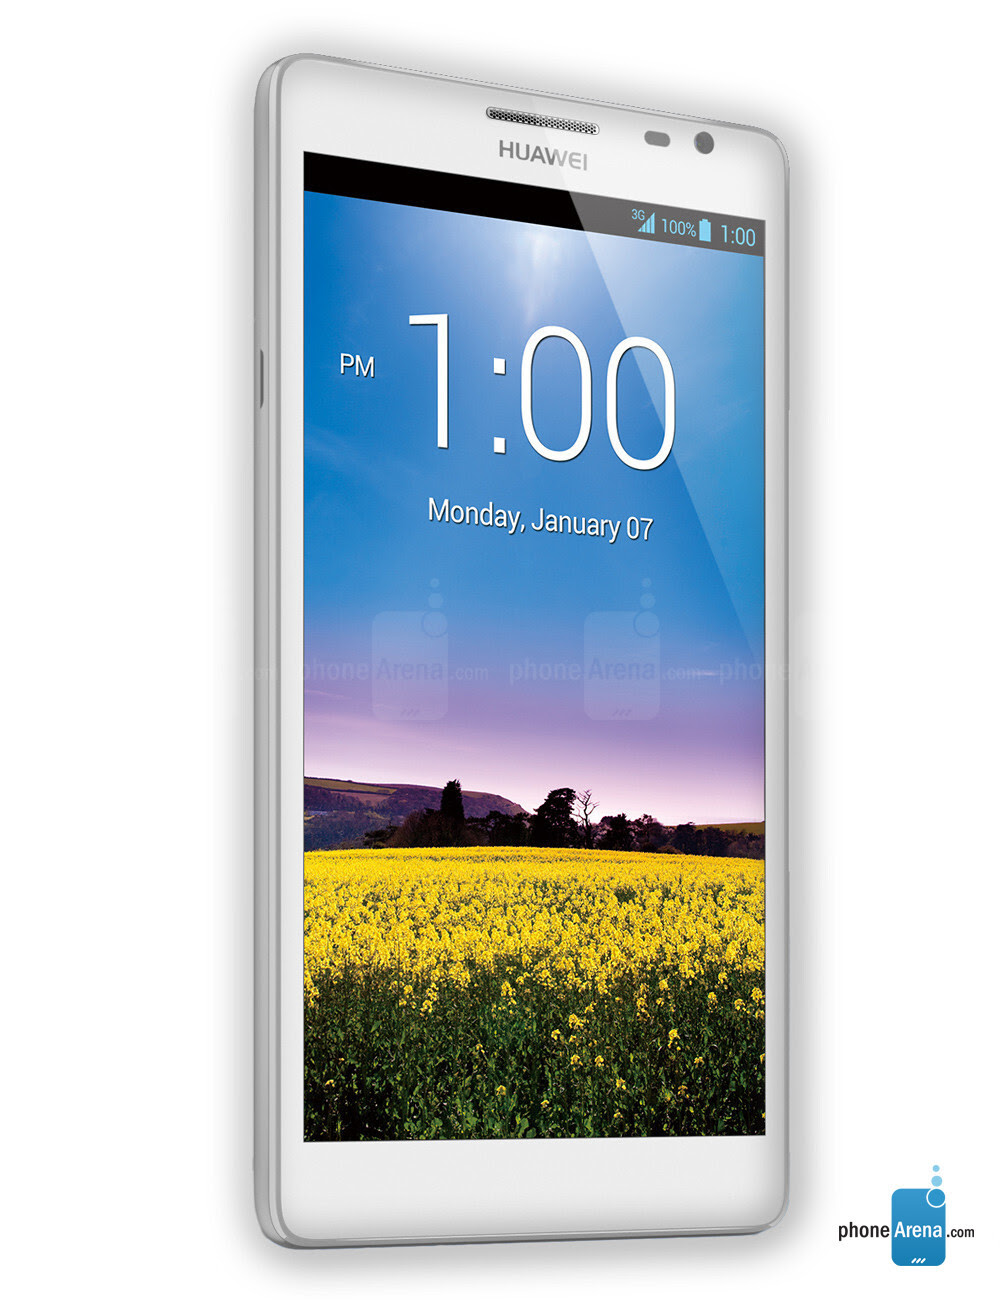 http://i-cdn.phonearena.com/images/phones/39605-xlarge/Huawei-Ascend-Mate.jpg